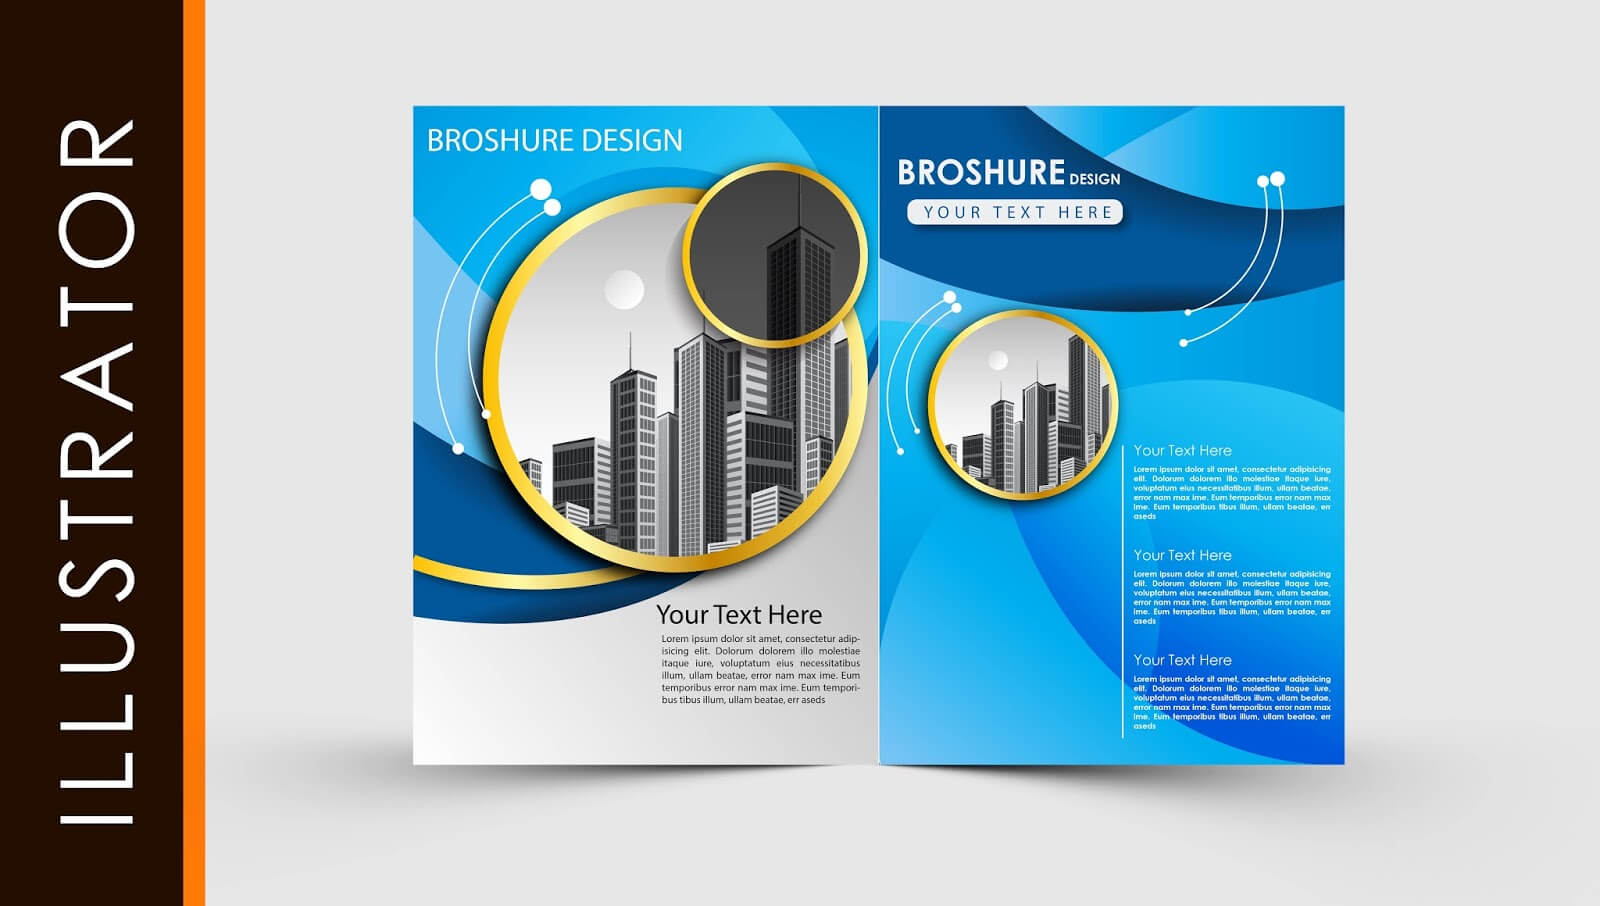 023 Brochure Templates Free Download For Photoshop Template Inside Free Illustrator Brochure Templates Download